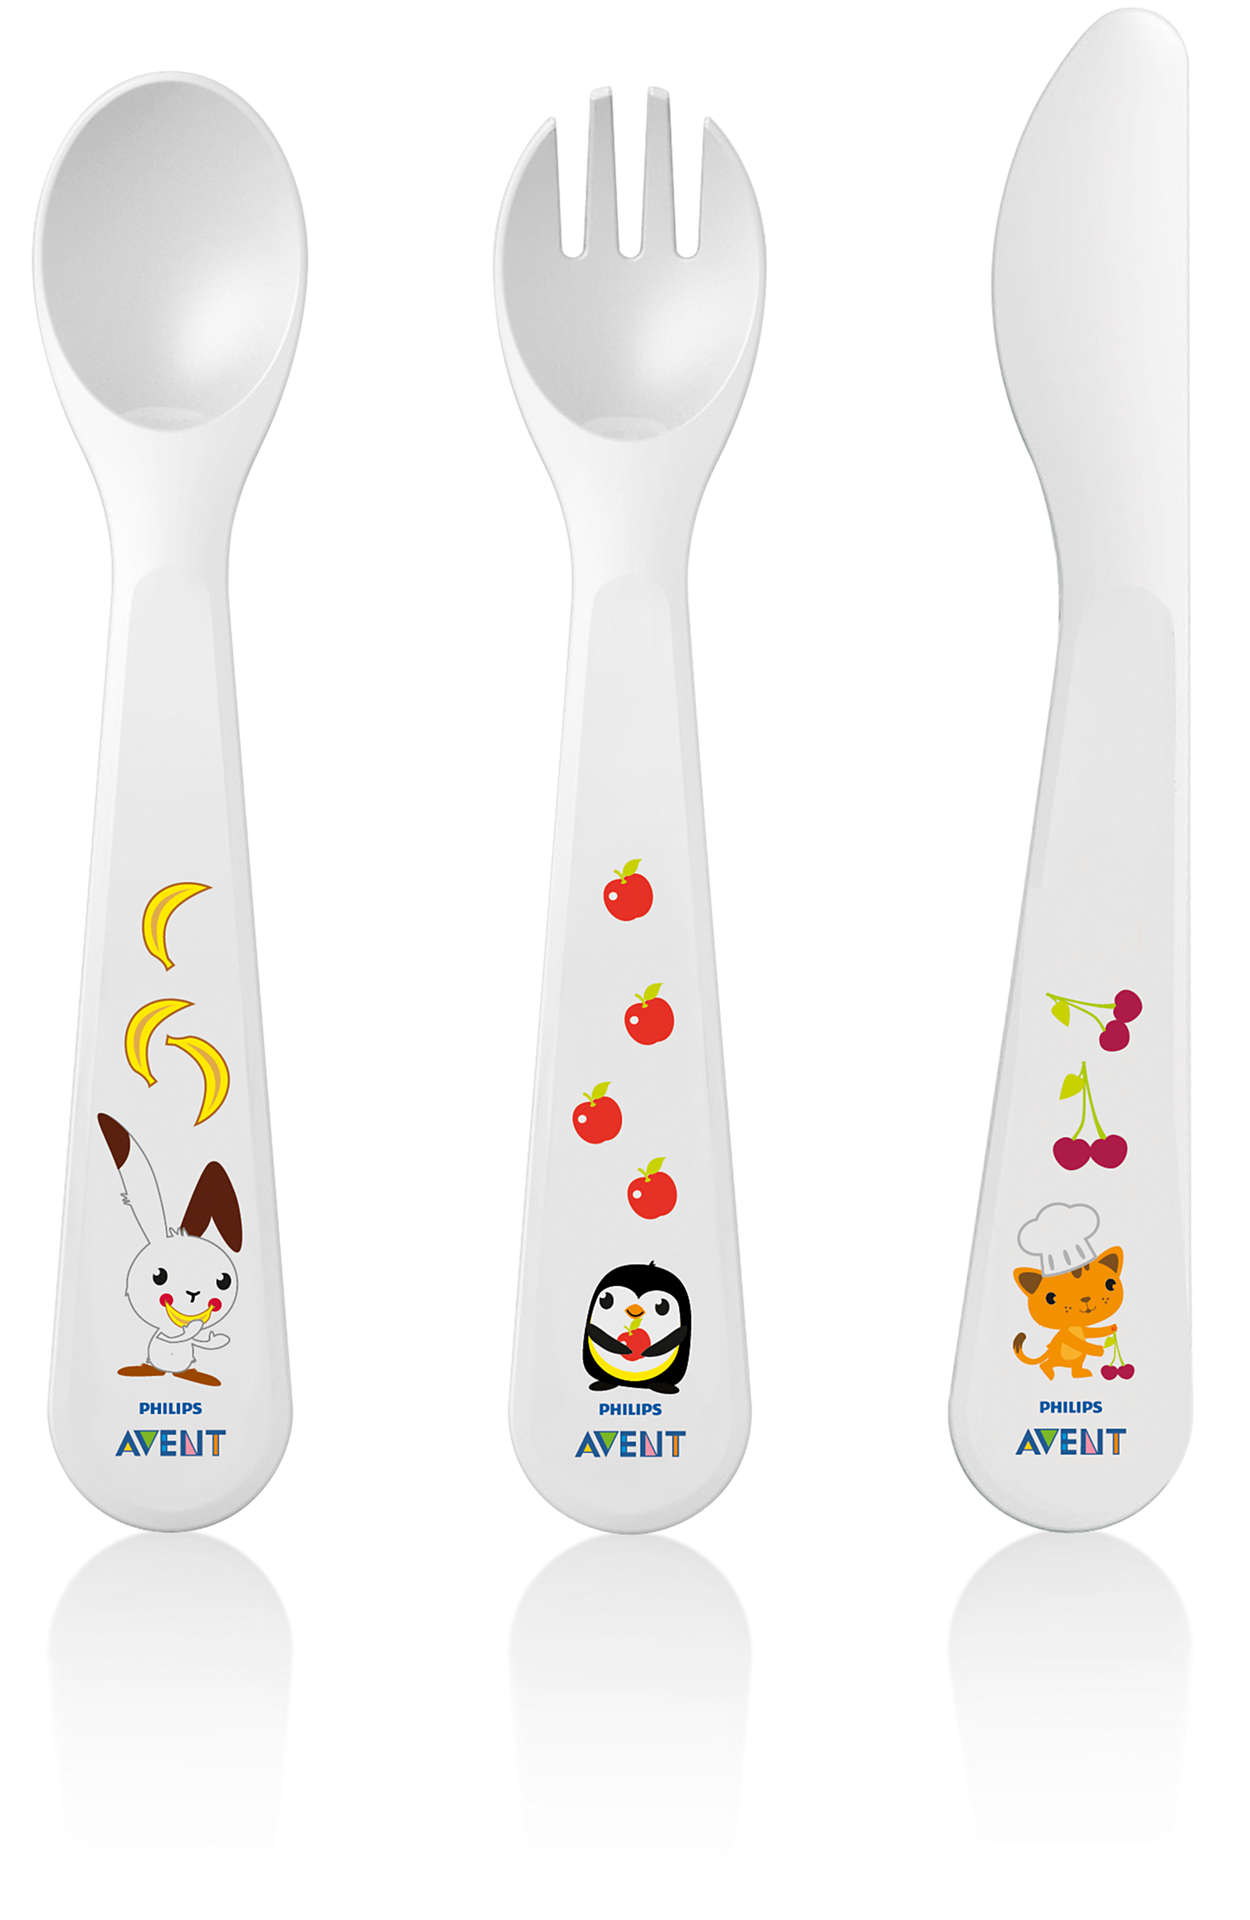 Toddler cutlery set for independent eating